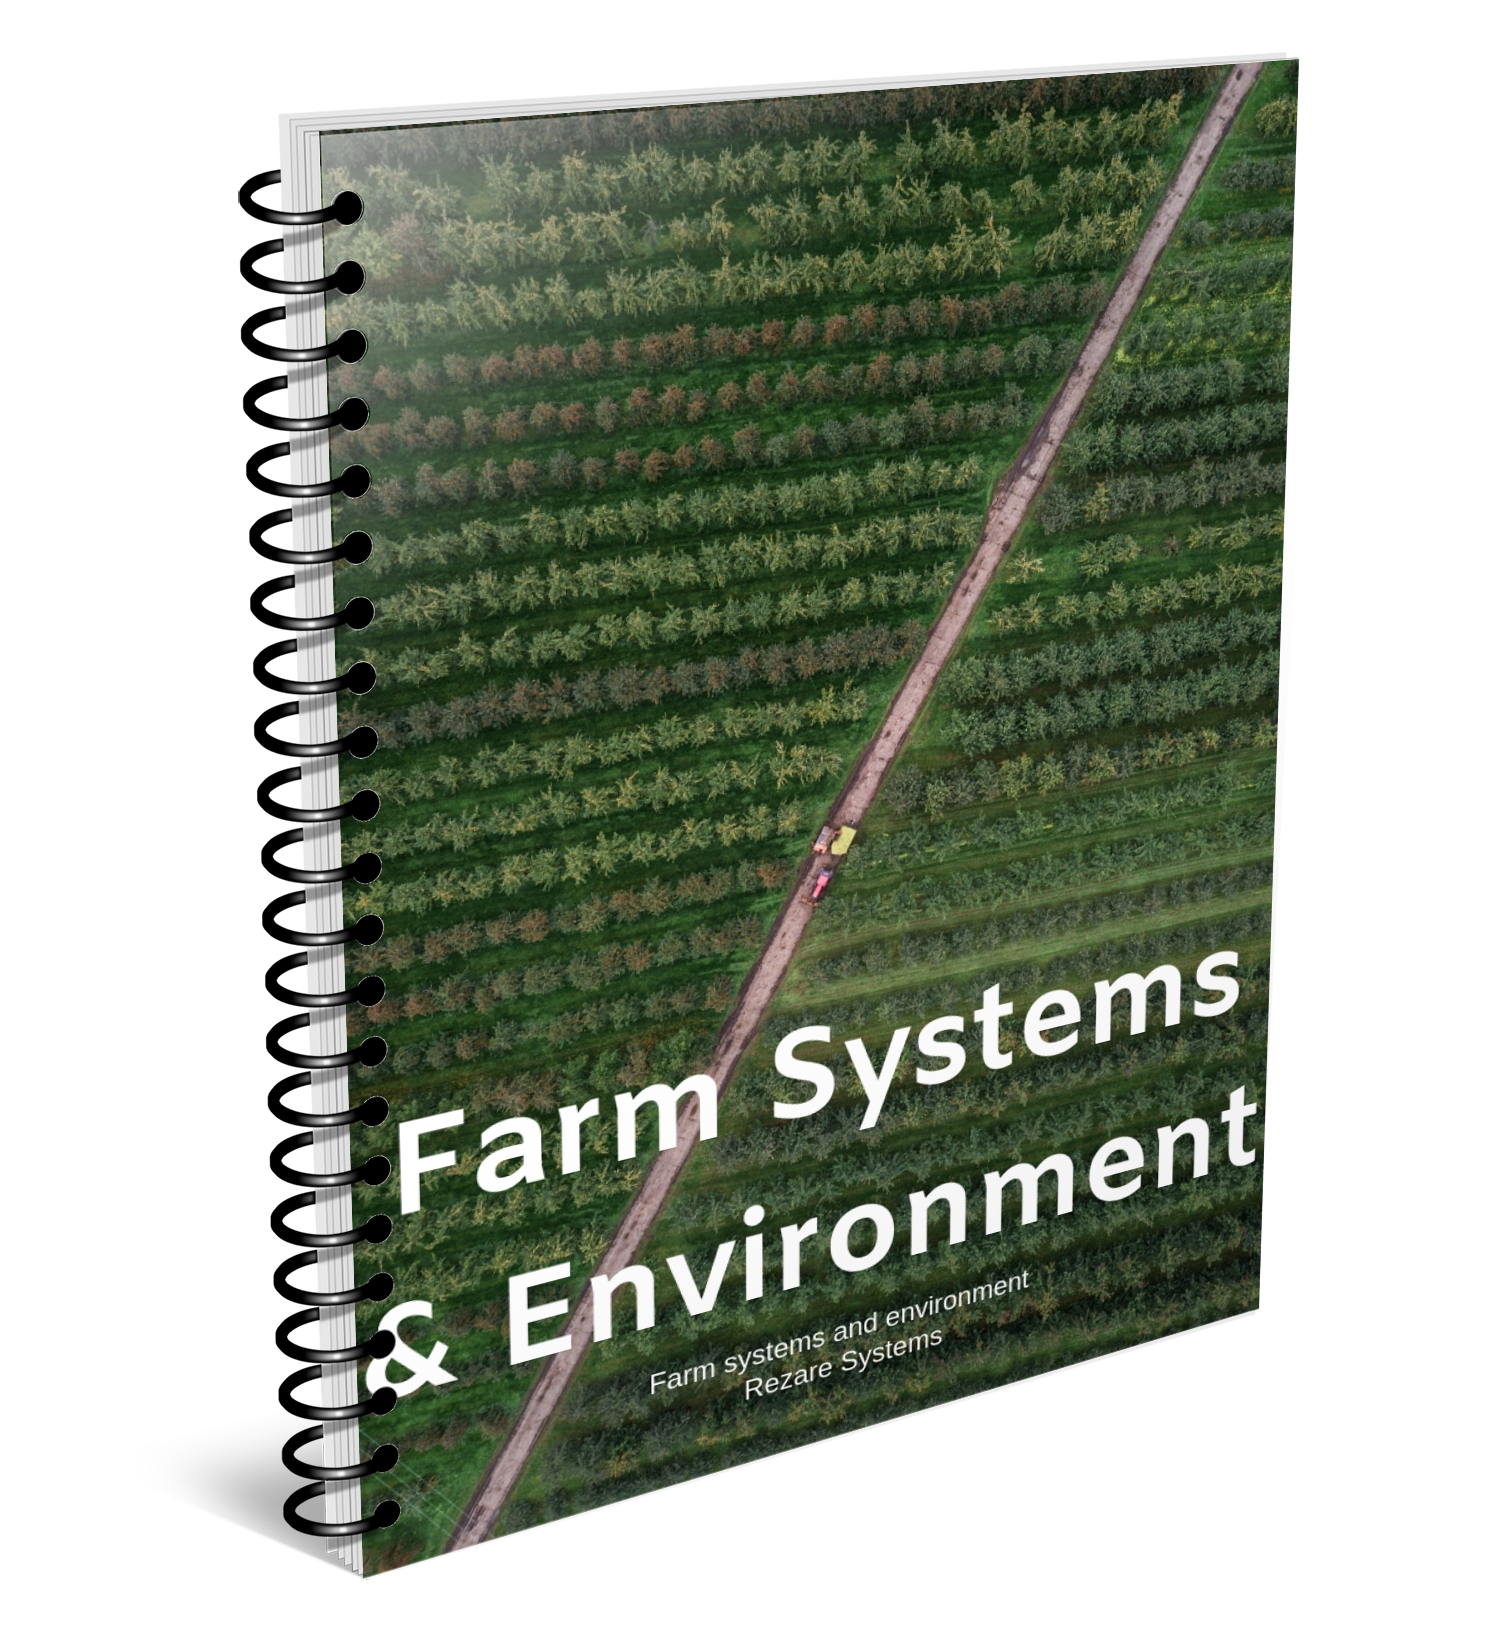 Farm Systems and Environment Landing Page Cover